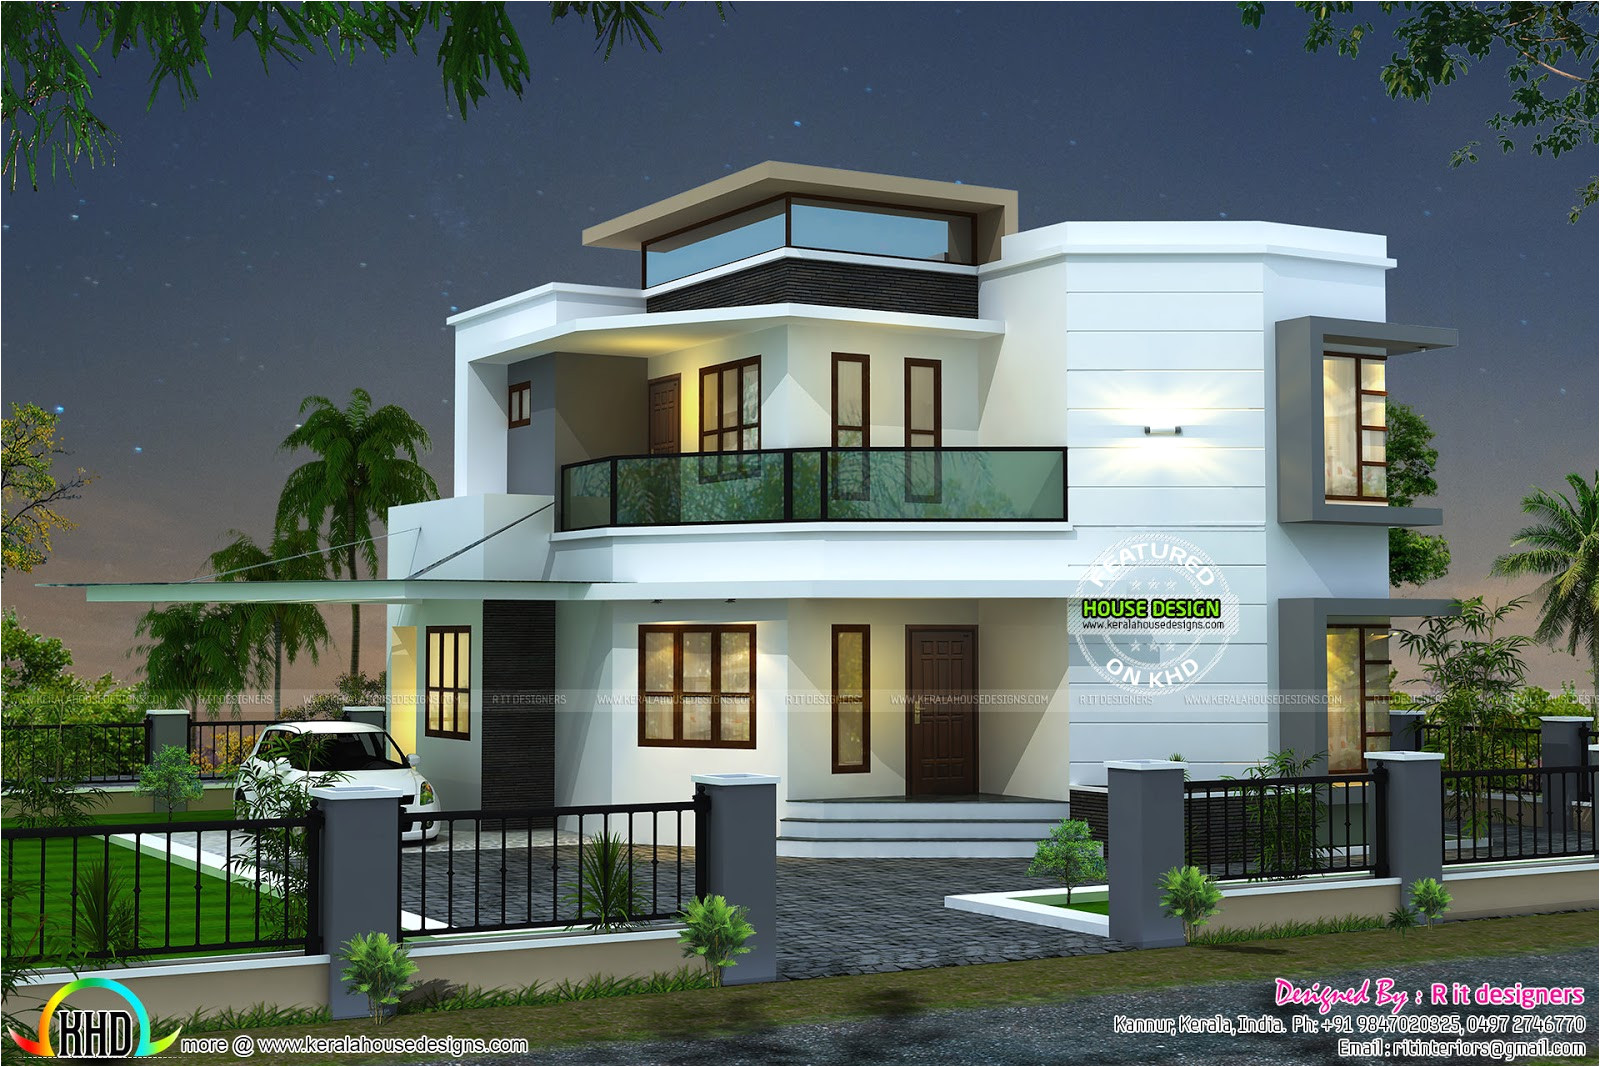 Homes Design Plan 1838 Sq Ft Cute Modern House Kerala Home Design and